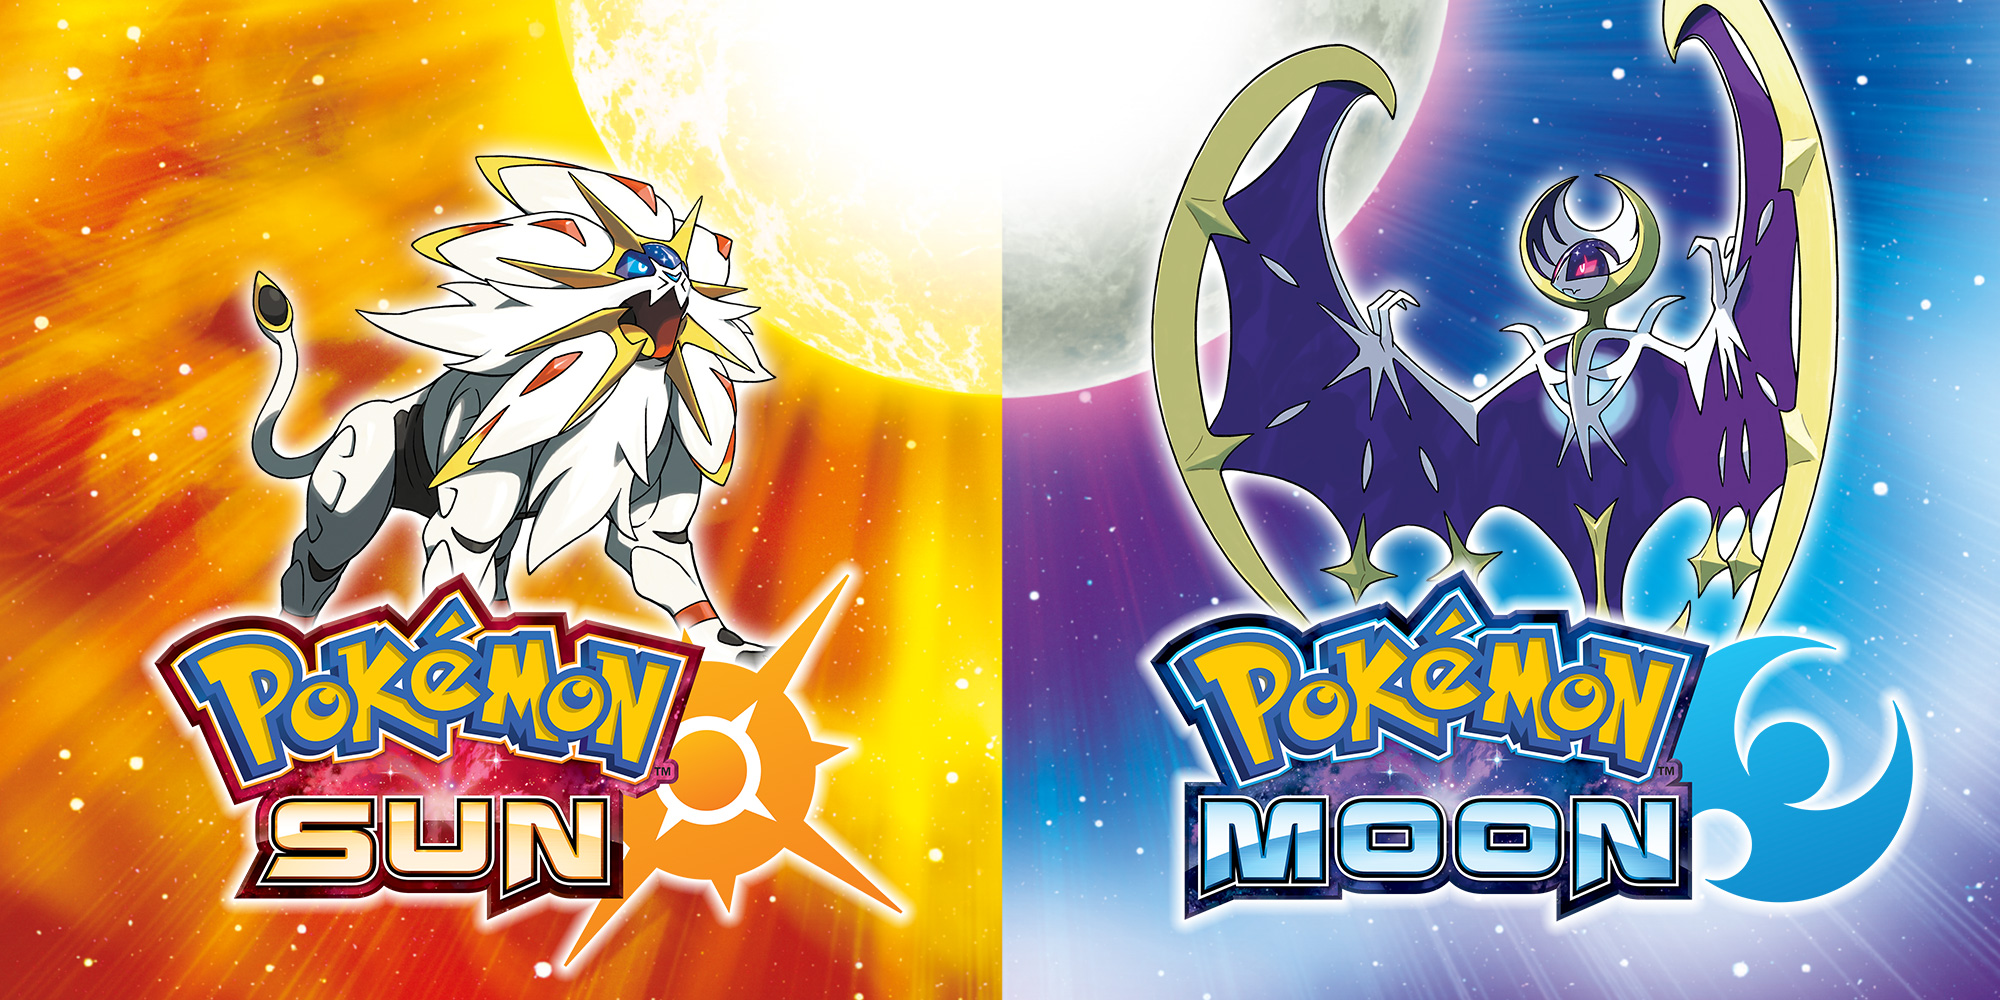 Pokémon Sun and Pokémon Moon!